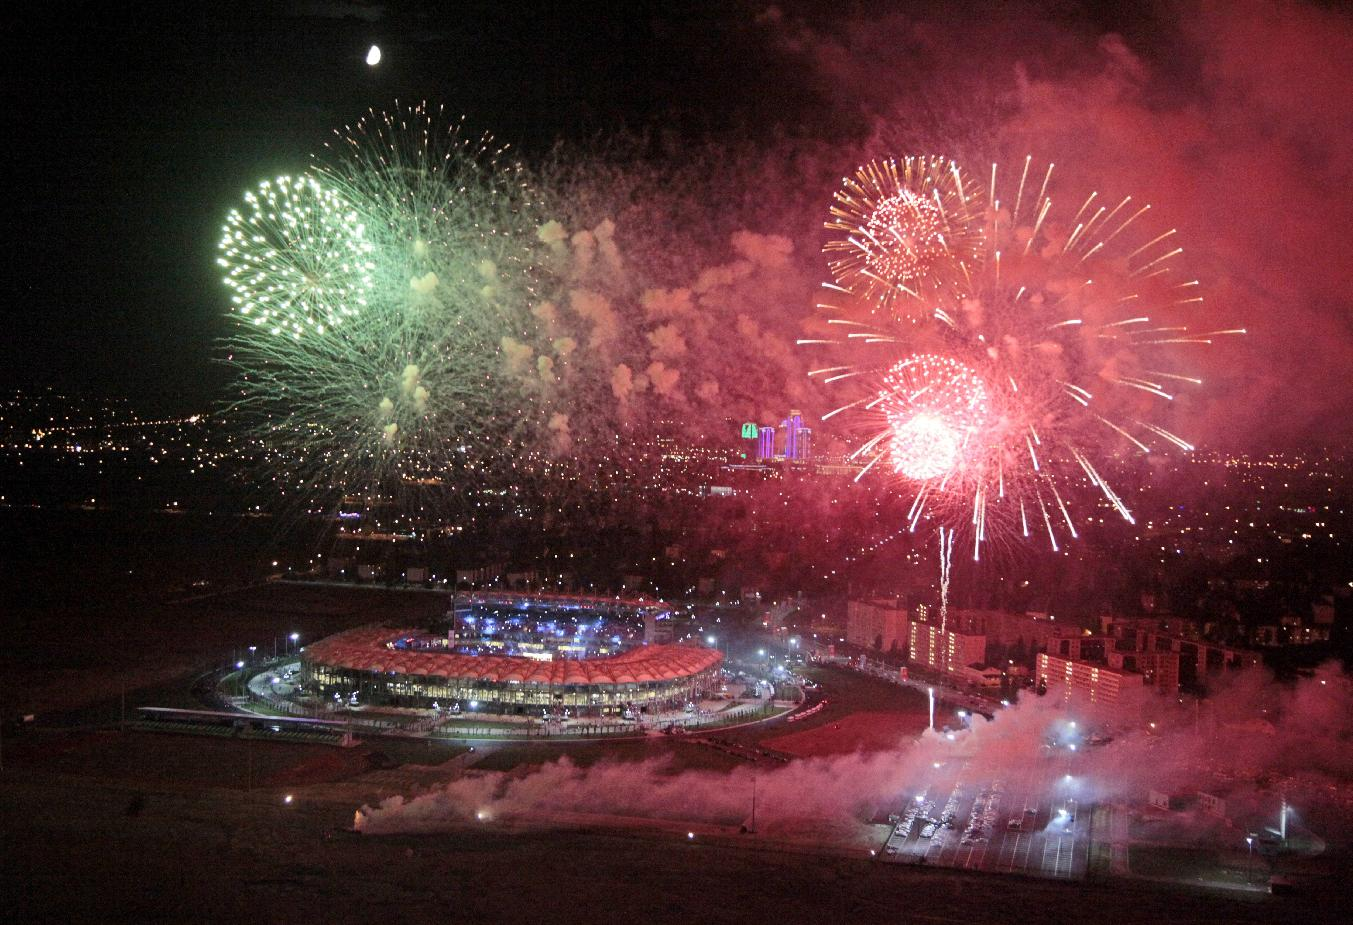 Fireworks explode over the Ahmat Arena, after the WBA heavyweight boxing championship fight between Uzbekistan's Ruslan Chagaev and Fres Oquendo of the United States, in Grozny, Russia, Monday, July 7, 2014. Former WBA heavyweight champion Chagaev became a two-time champ, as he won a 12-round majority verdict over Fres Oquendo to pick up the